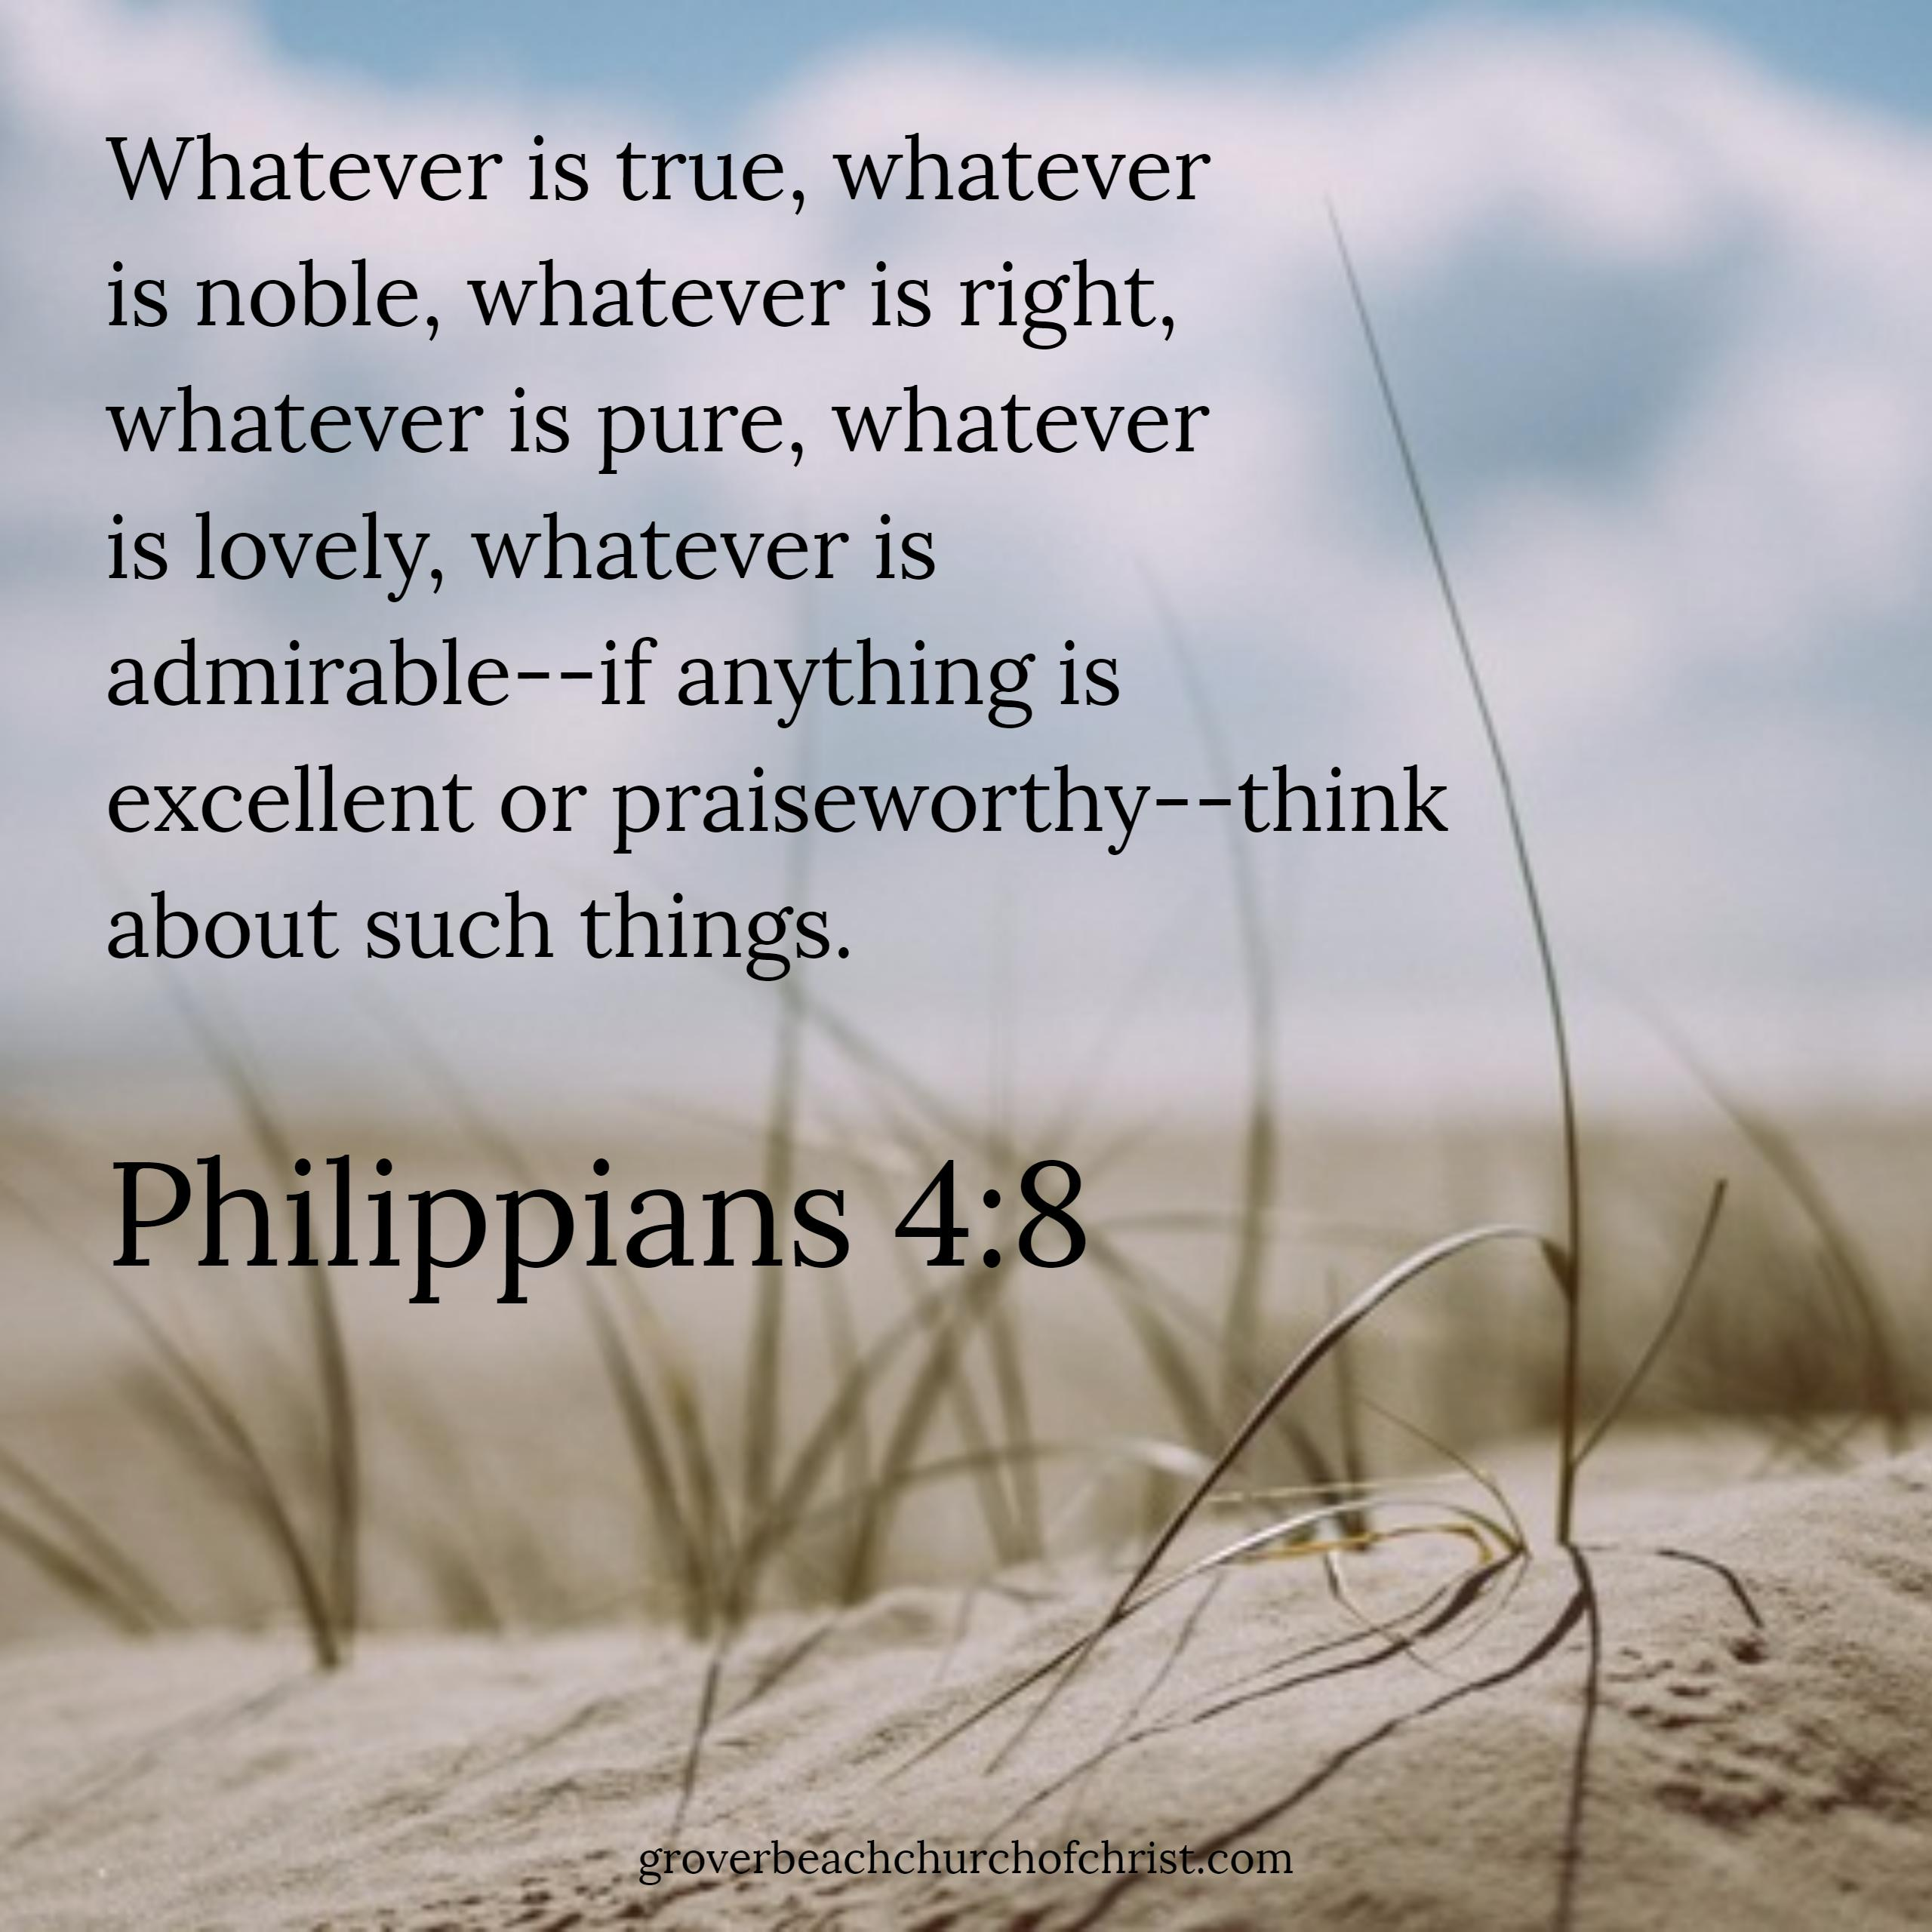 Philippians-4:8-whatever-is-true